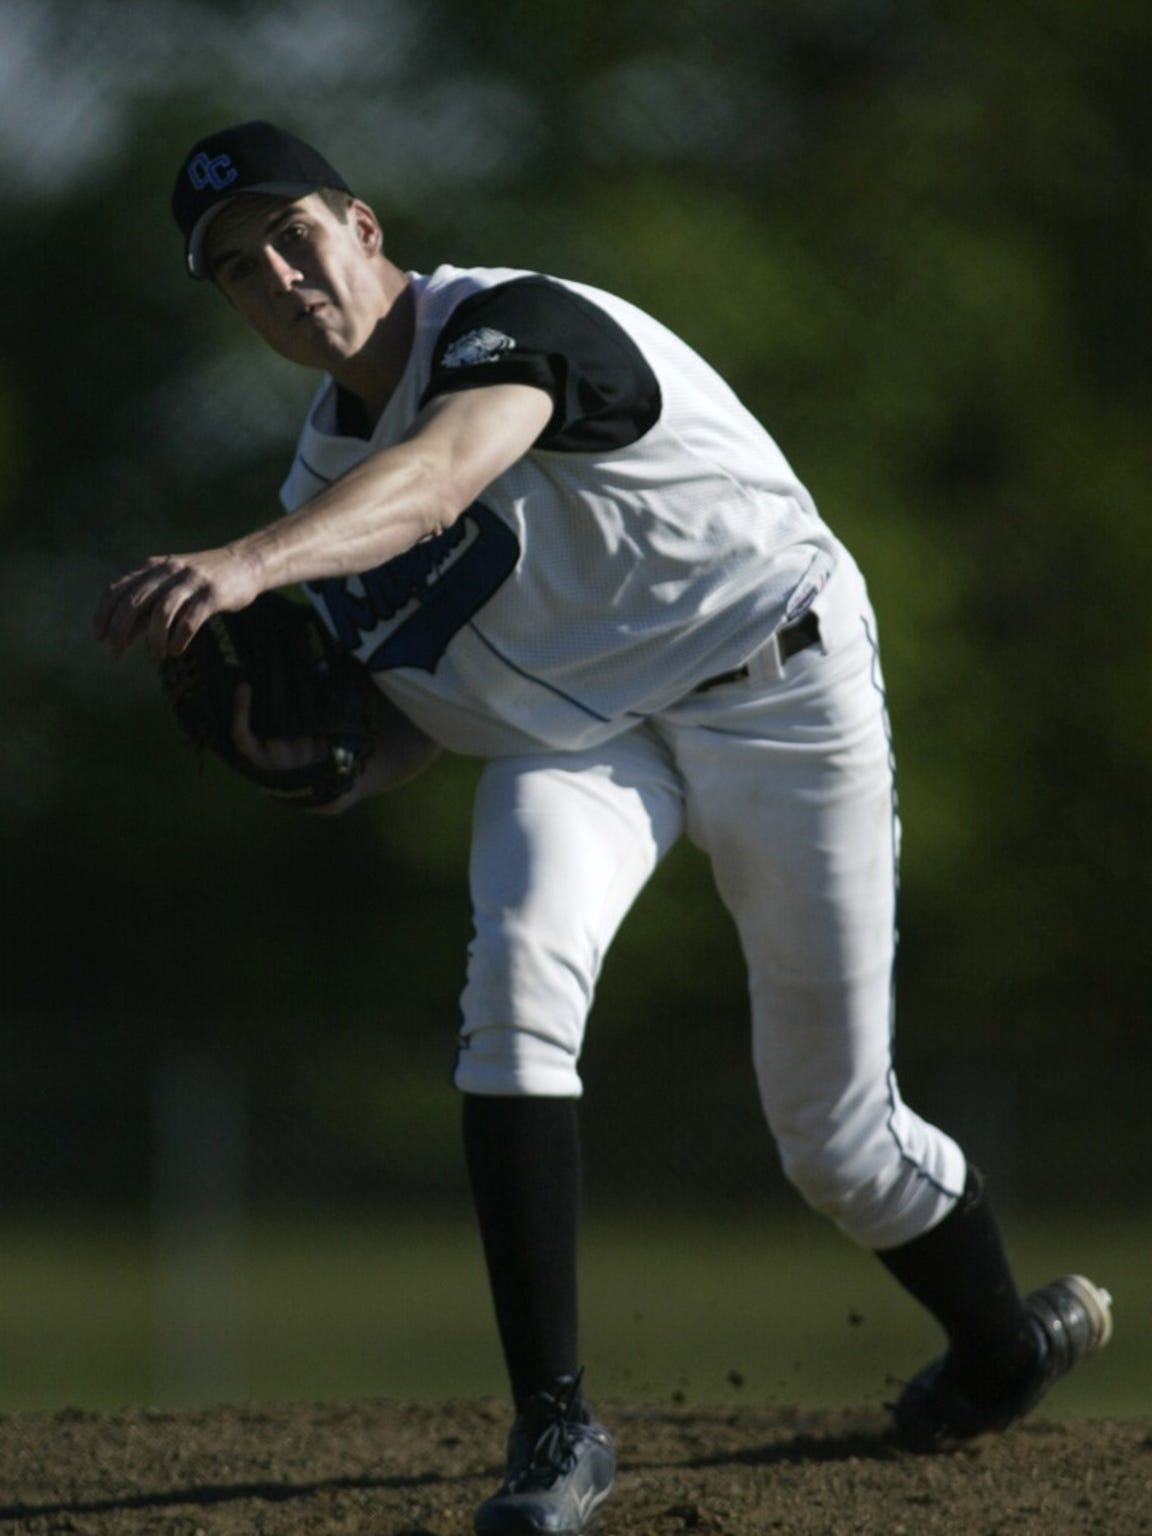 Oak Creek's Tony Butler throws a pitch during the 2004